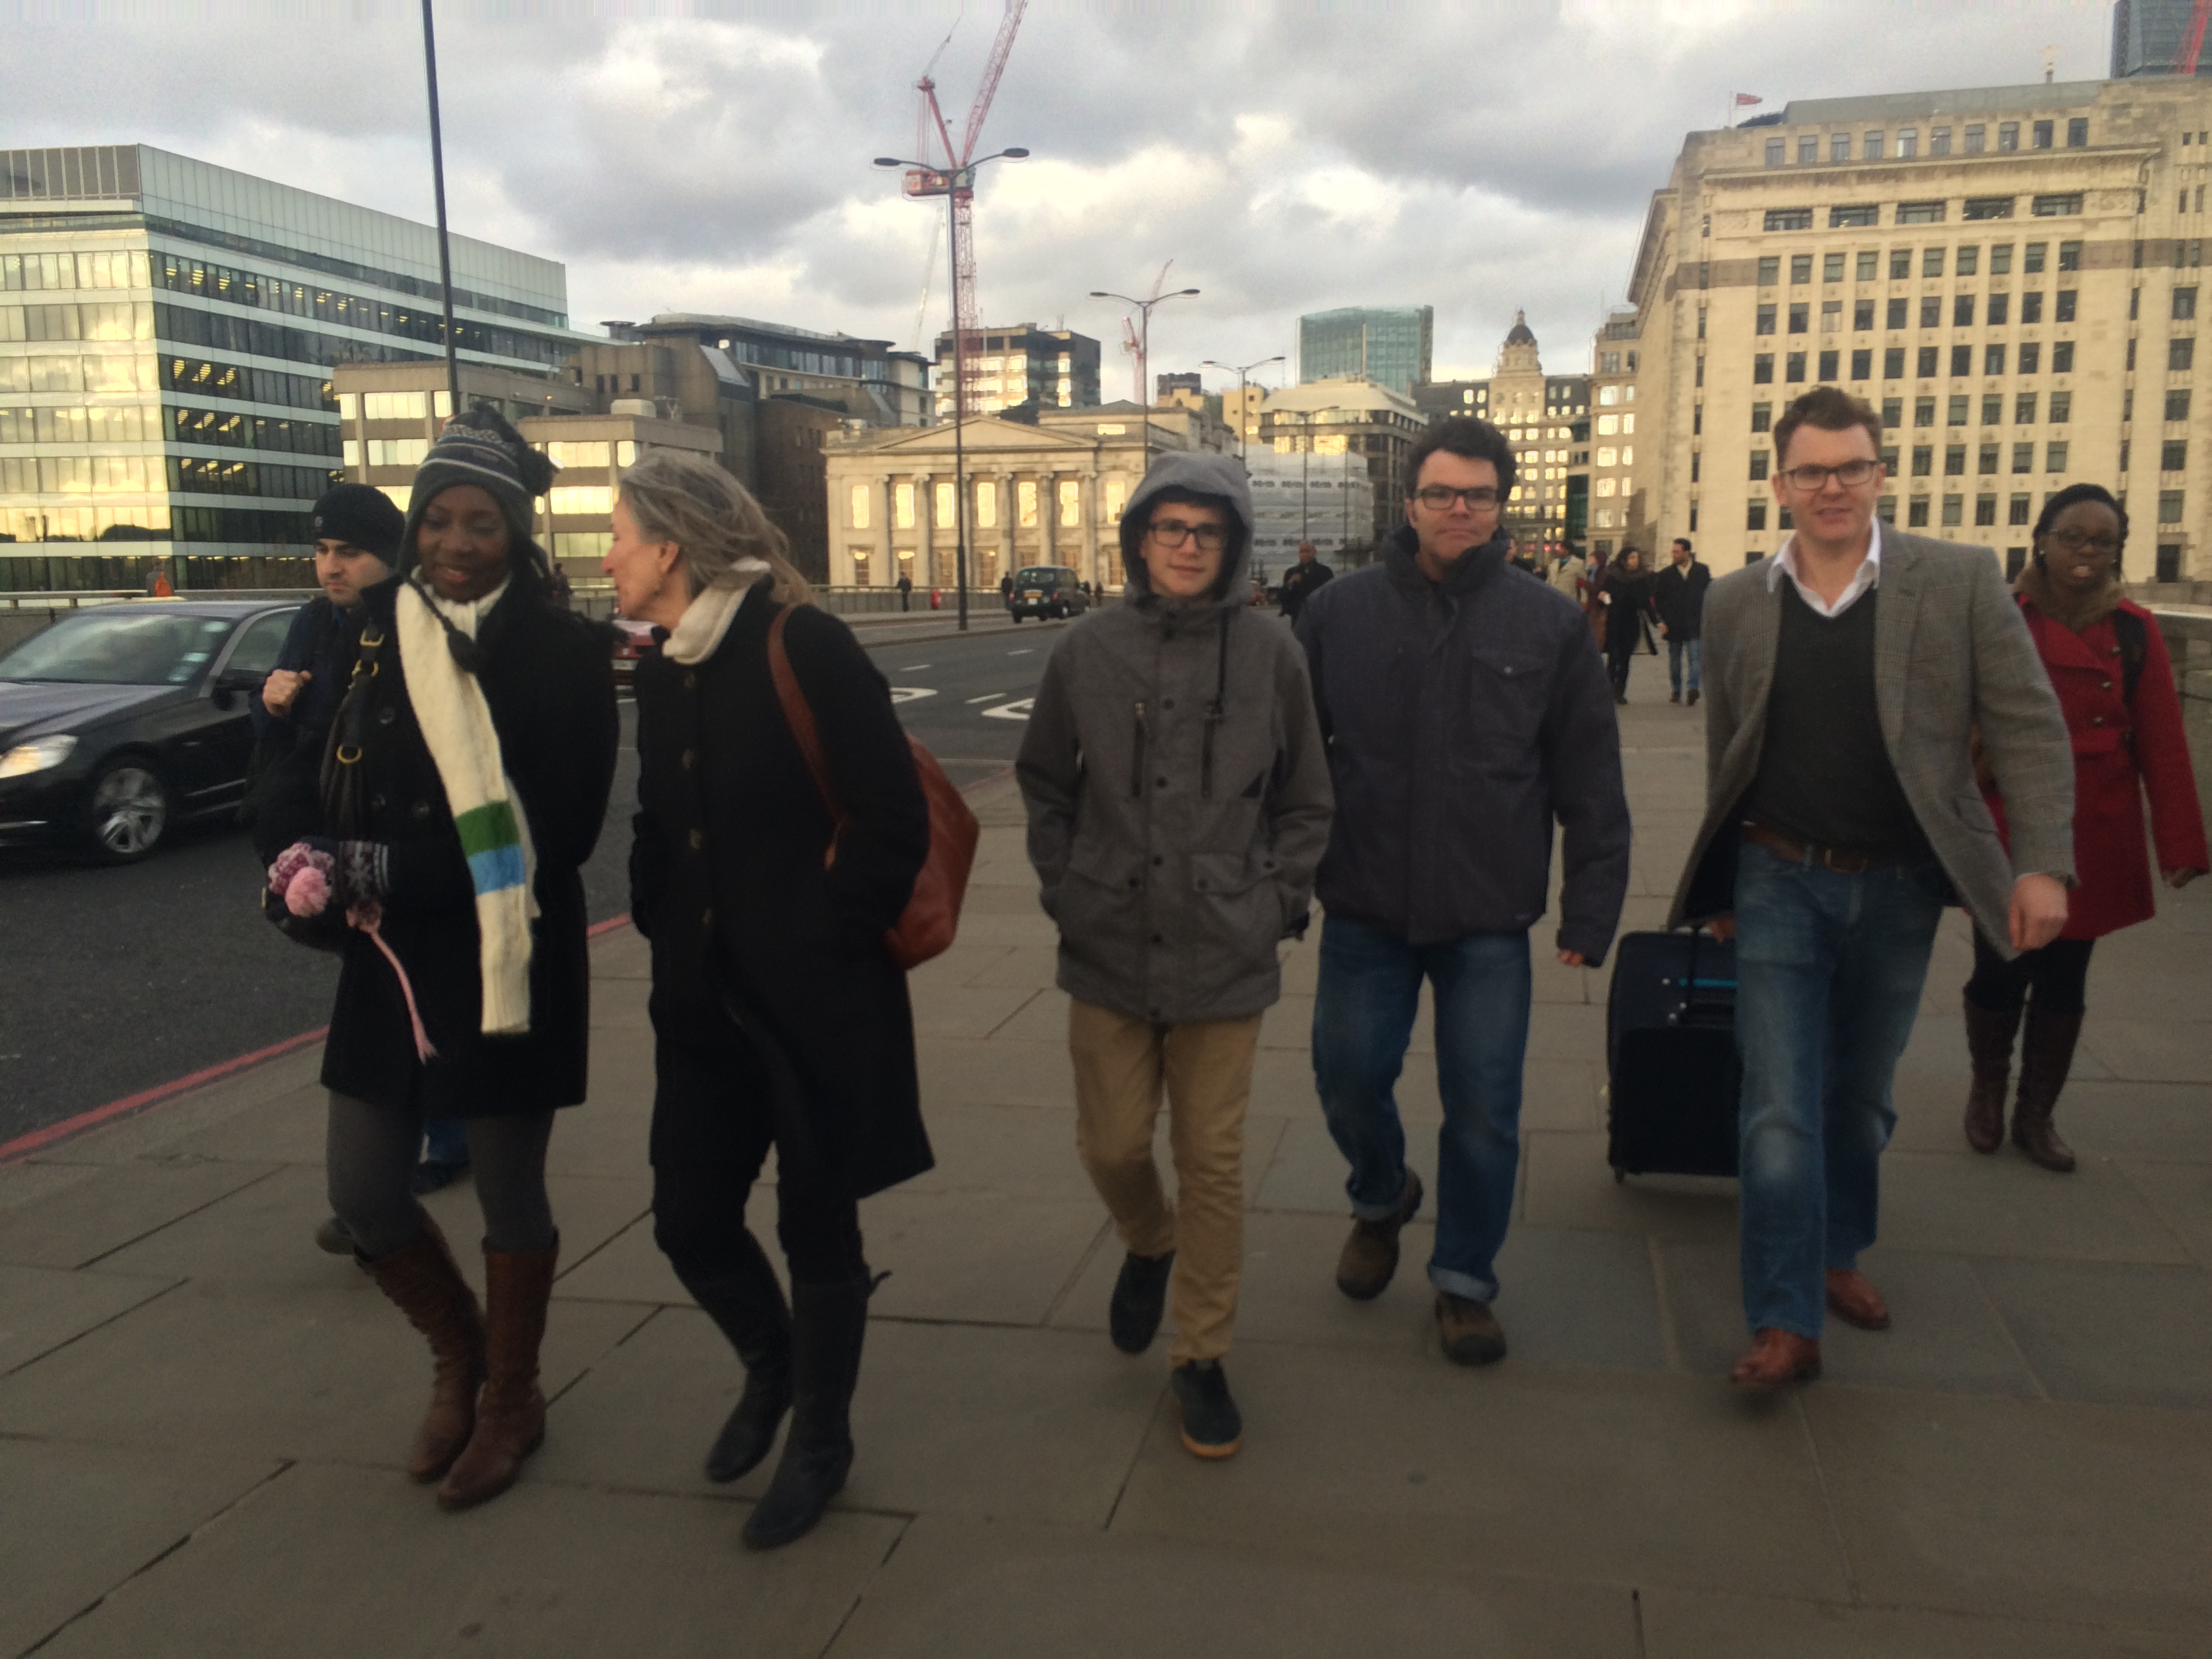 The Shearers get together at Christmas on London Bridge